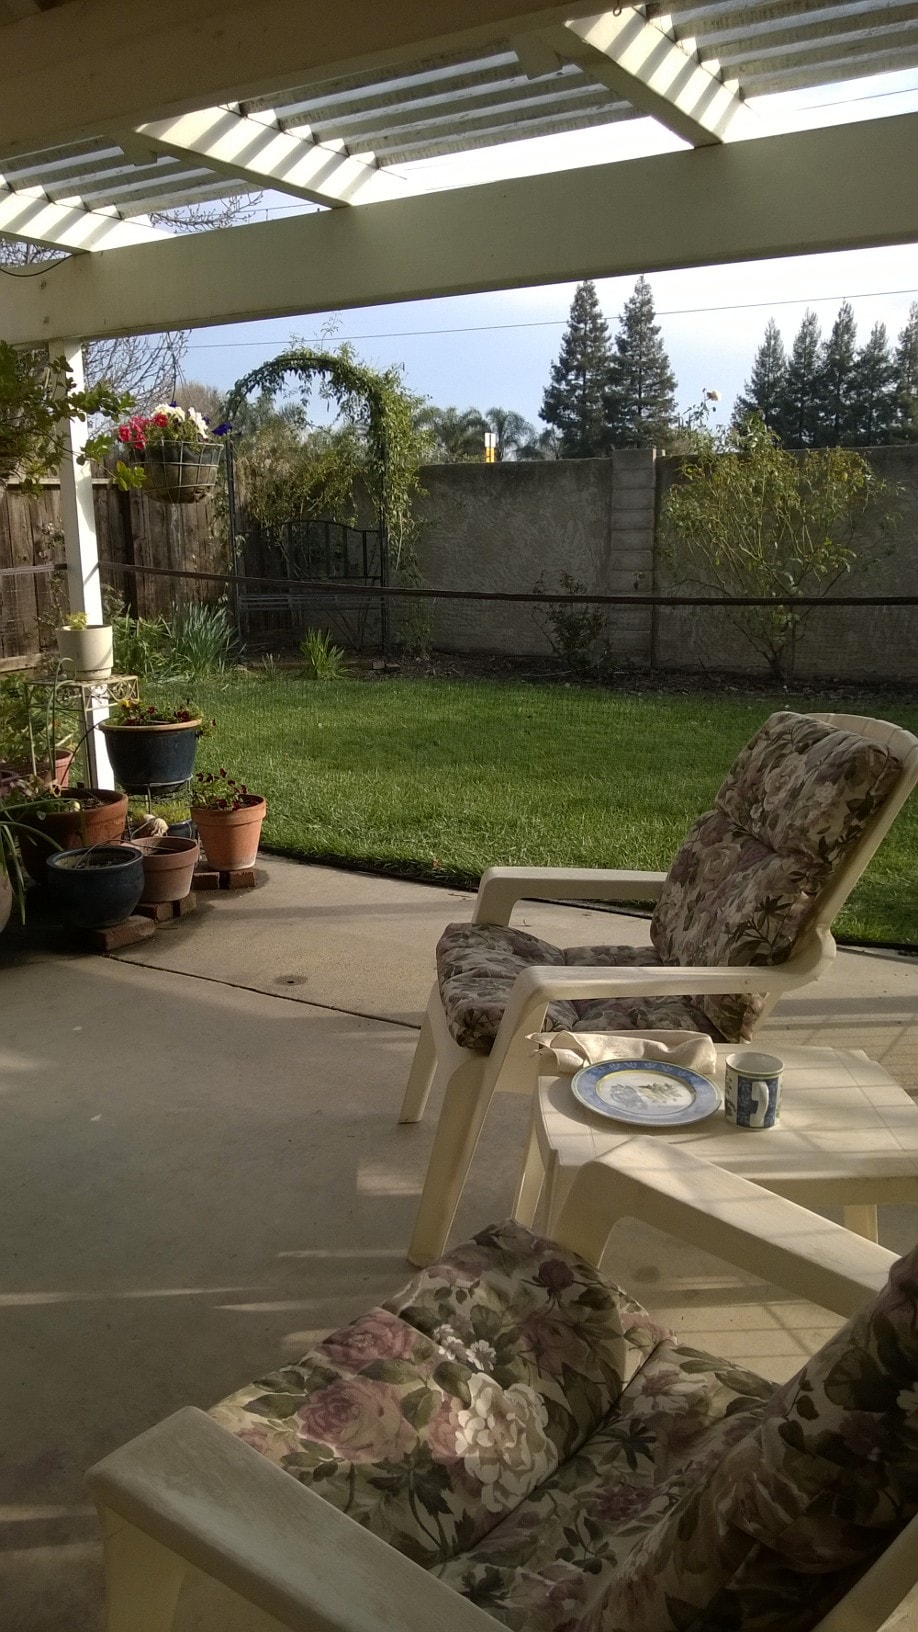 Our patio is a nice place to relax outdoors with a glass of iced tea or cup of coffee.